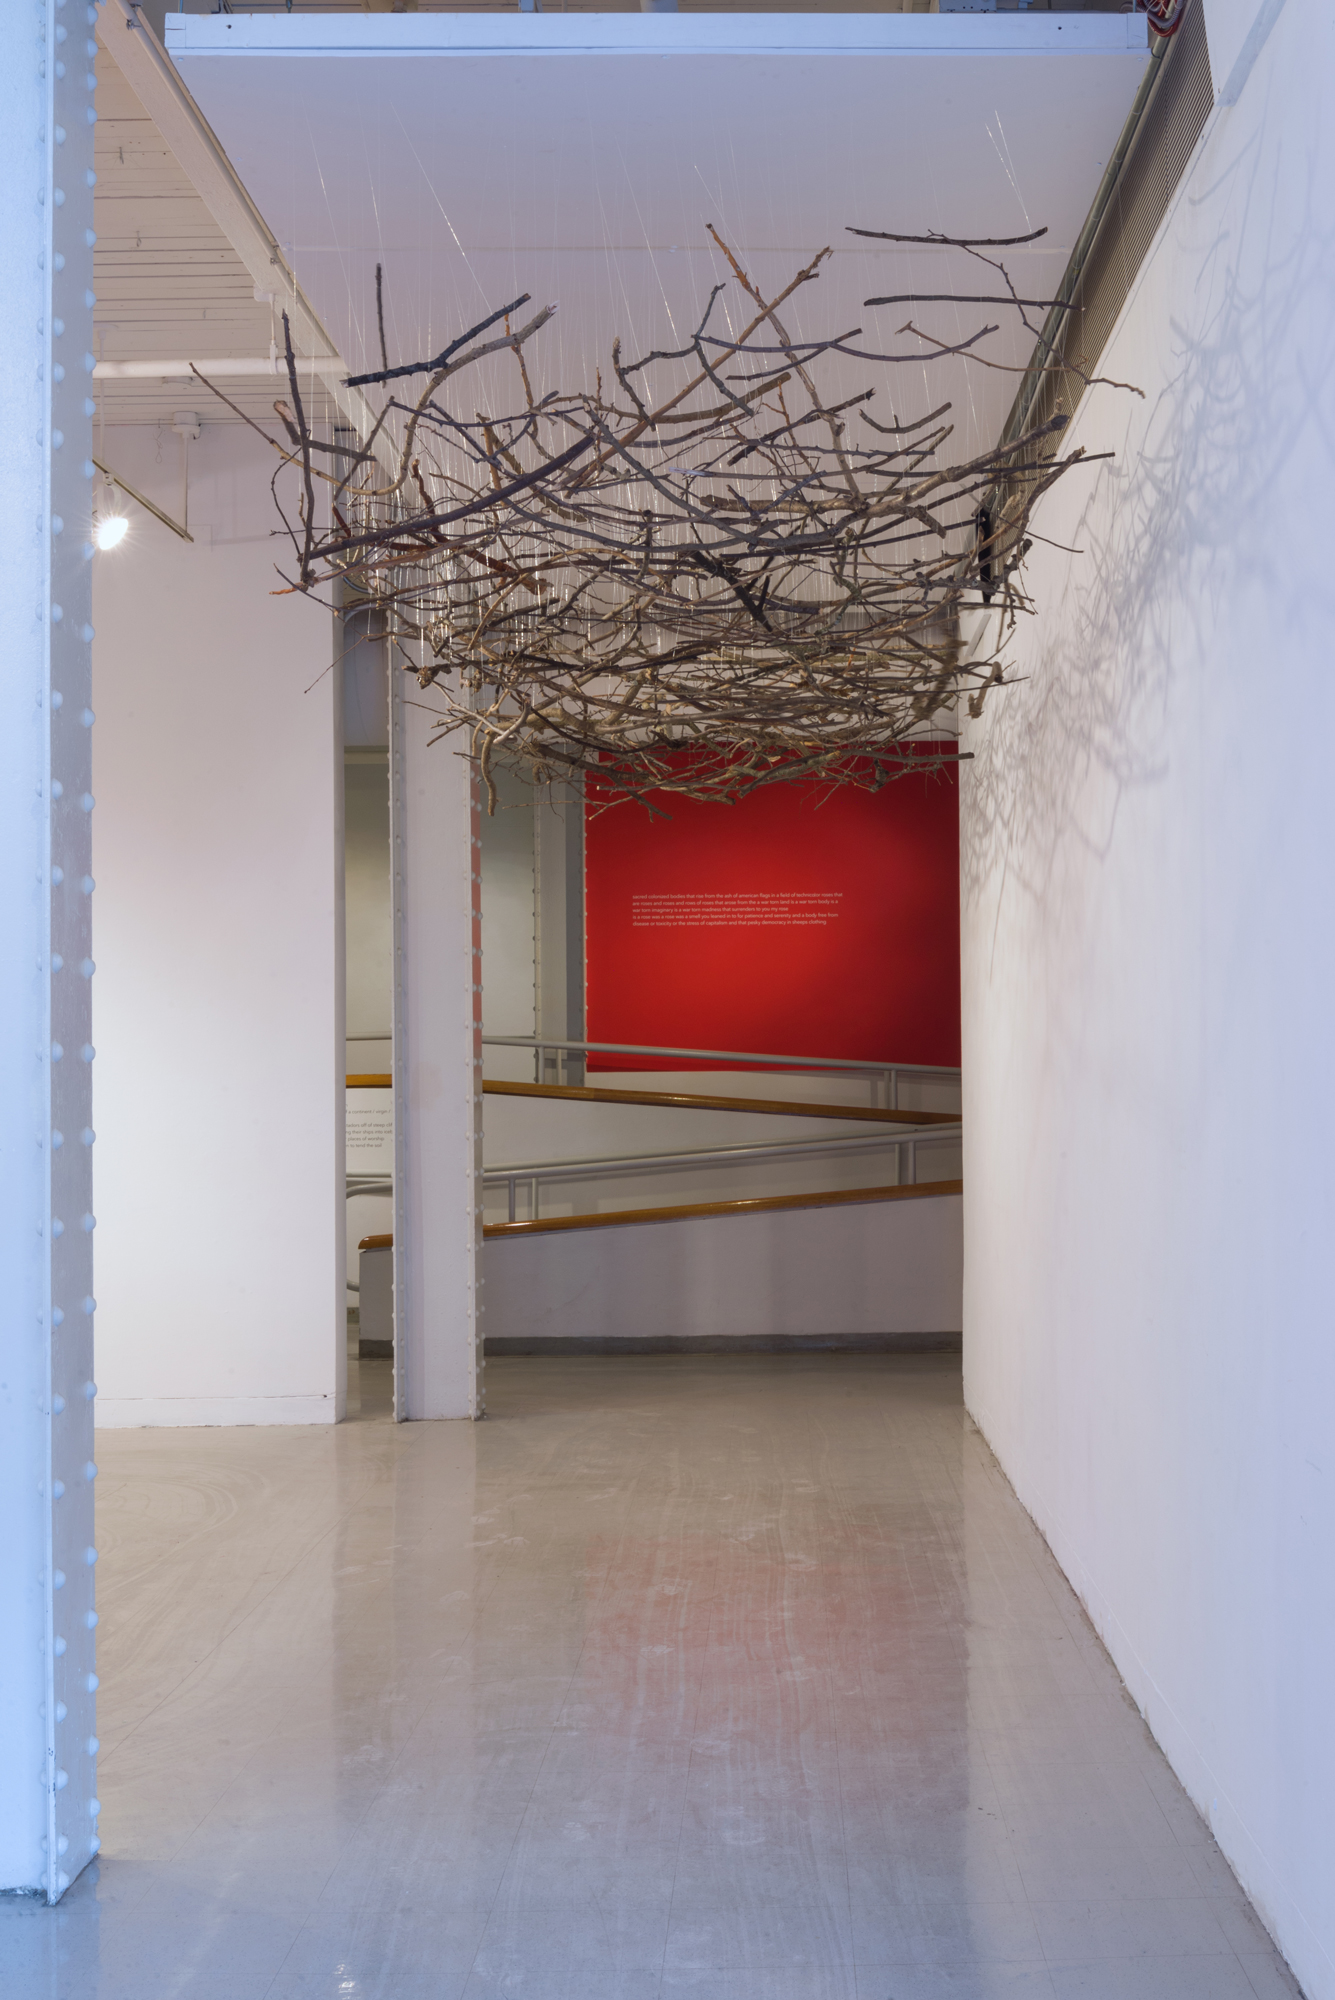 Maren Hassinger,  Blanket of Branches,  branches, 1986, recreated 2018